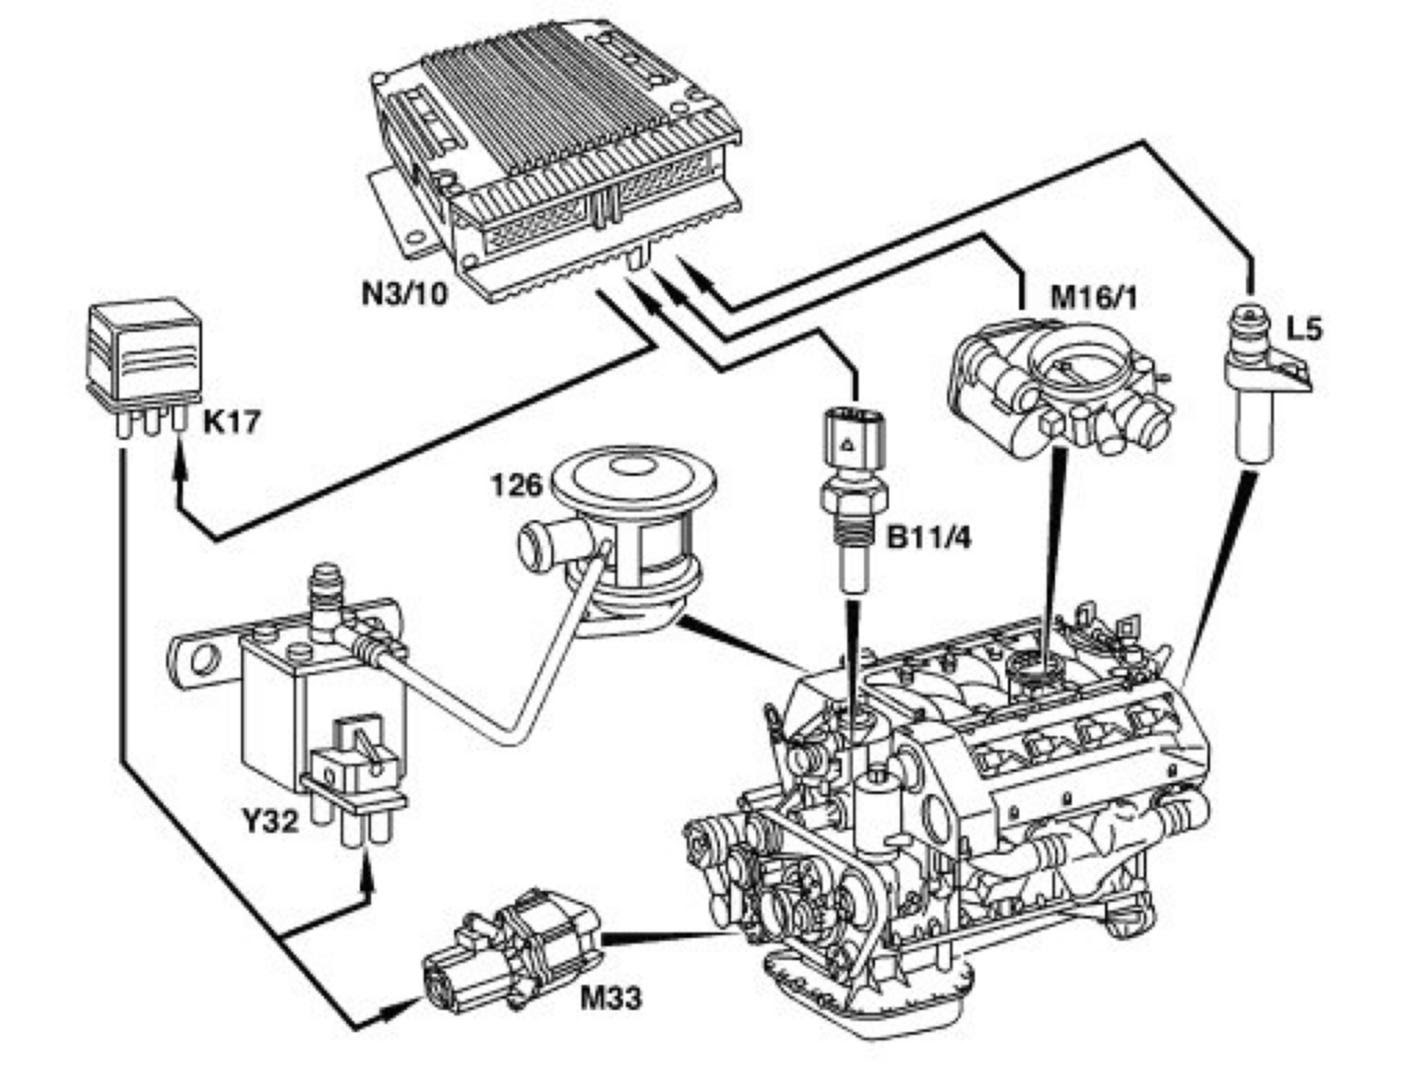 1999 Mercedes E320 Engine Diagram Wiring Diagram Equip A Equip A Tartufoavaltopina It